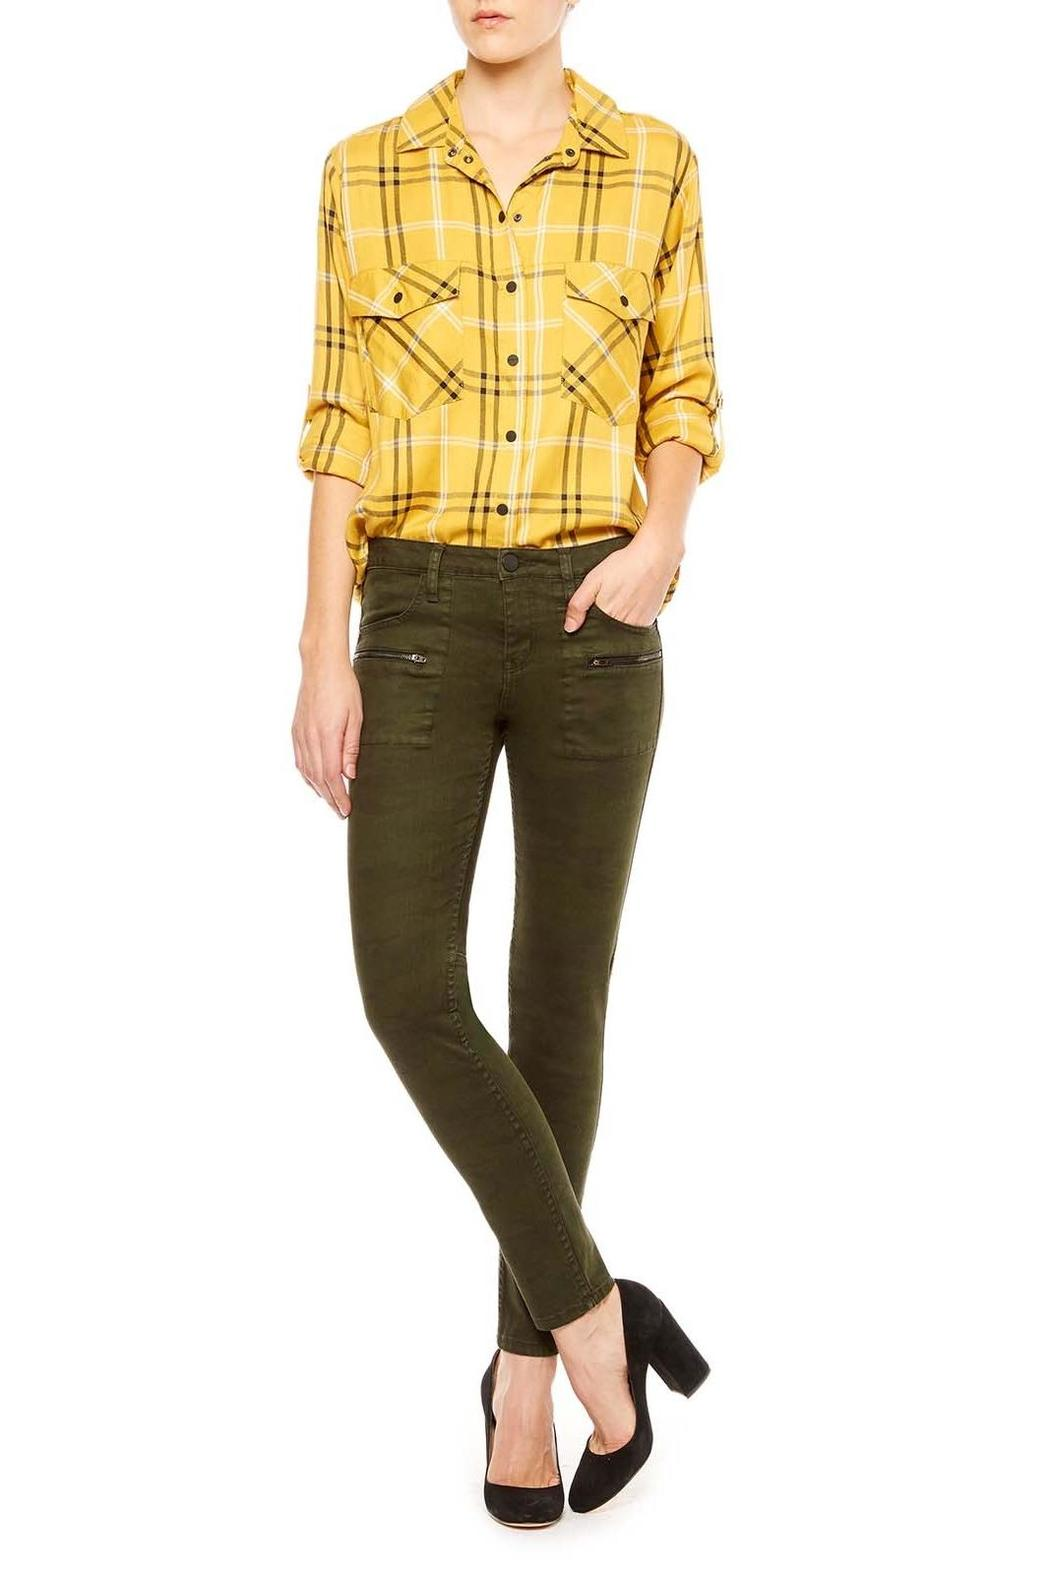 Sanctuary Mustard Plaid Shirt - Side Cropped Image